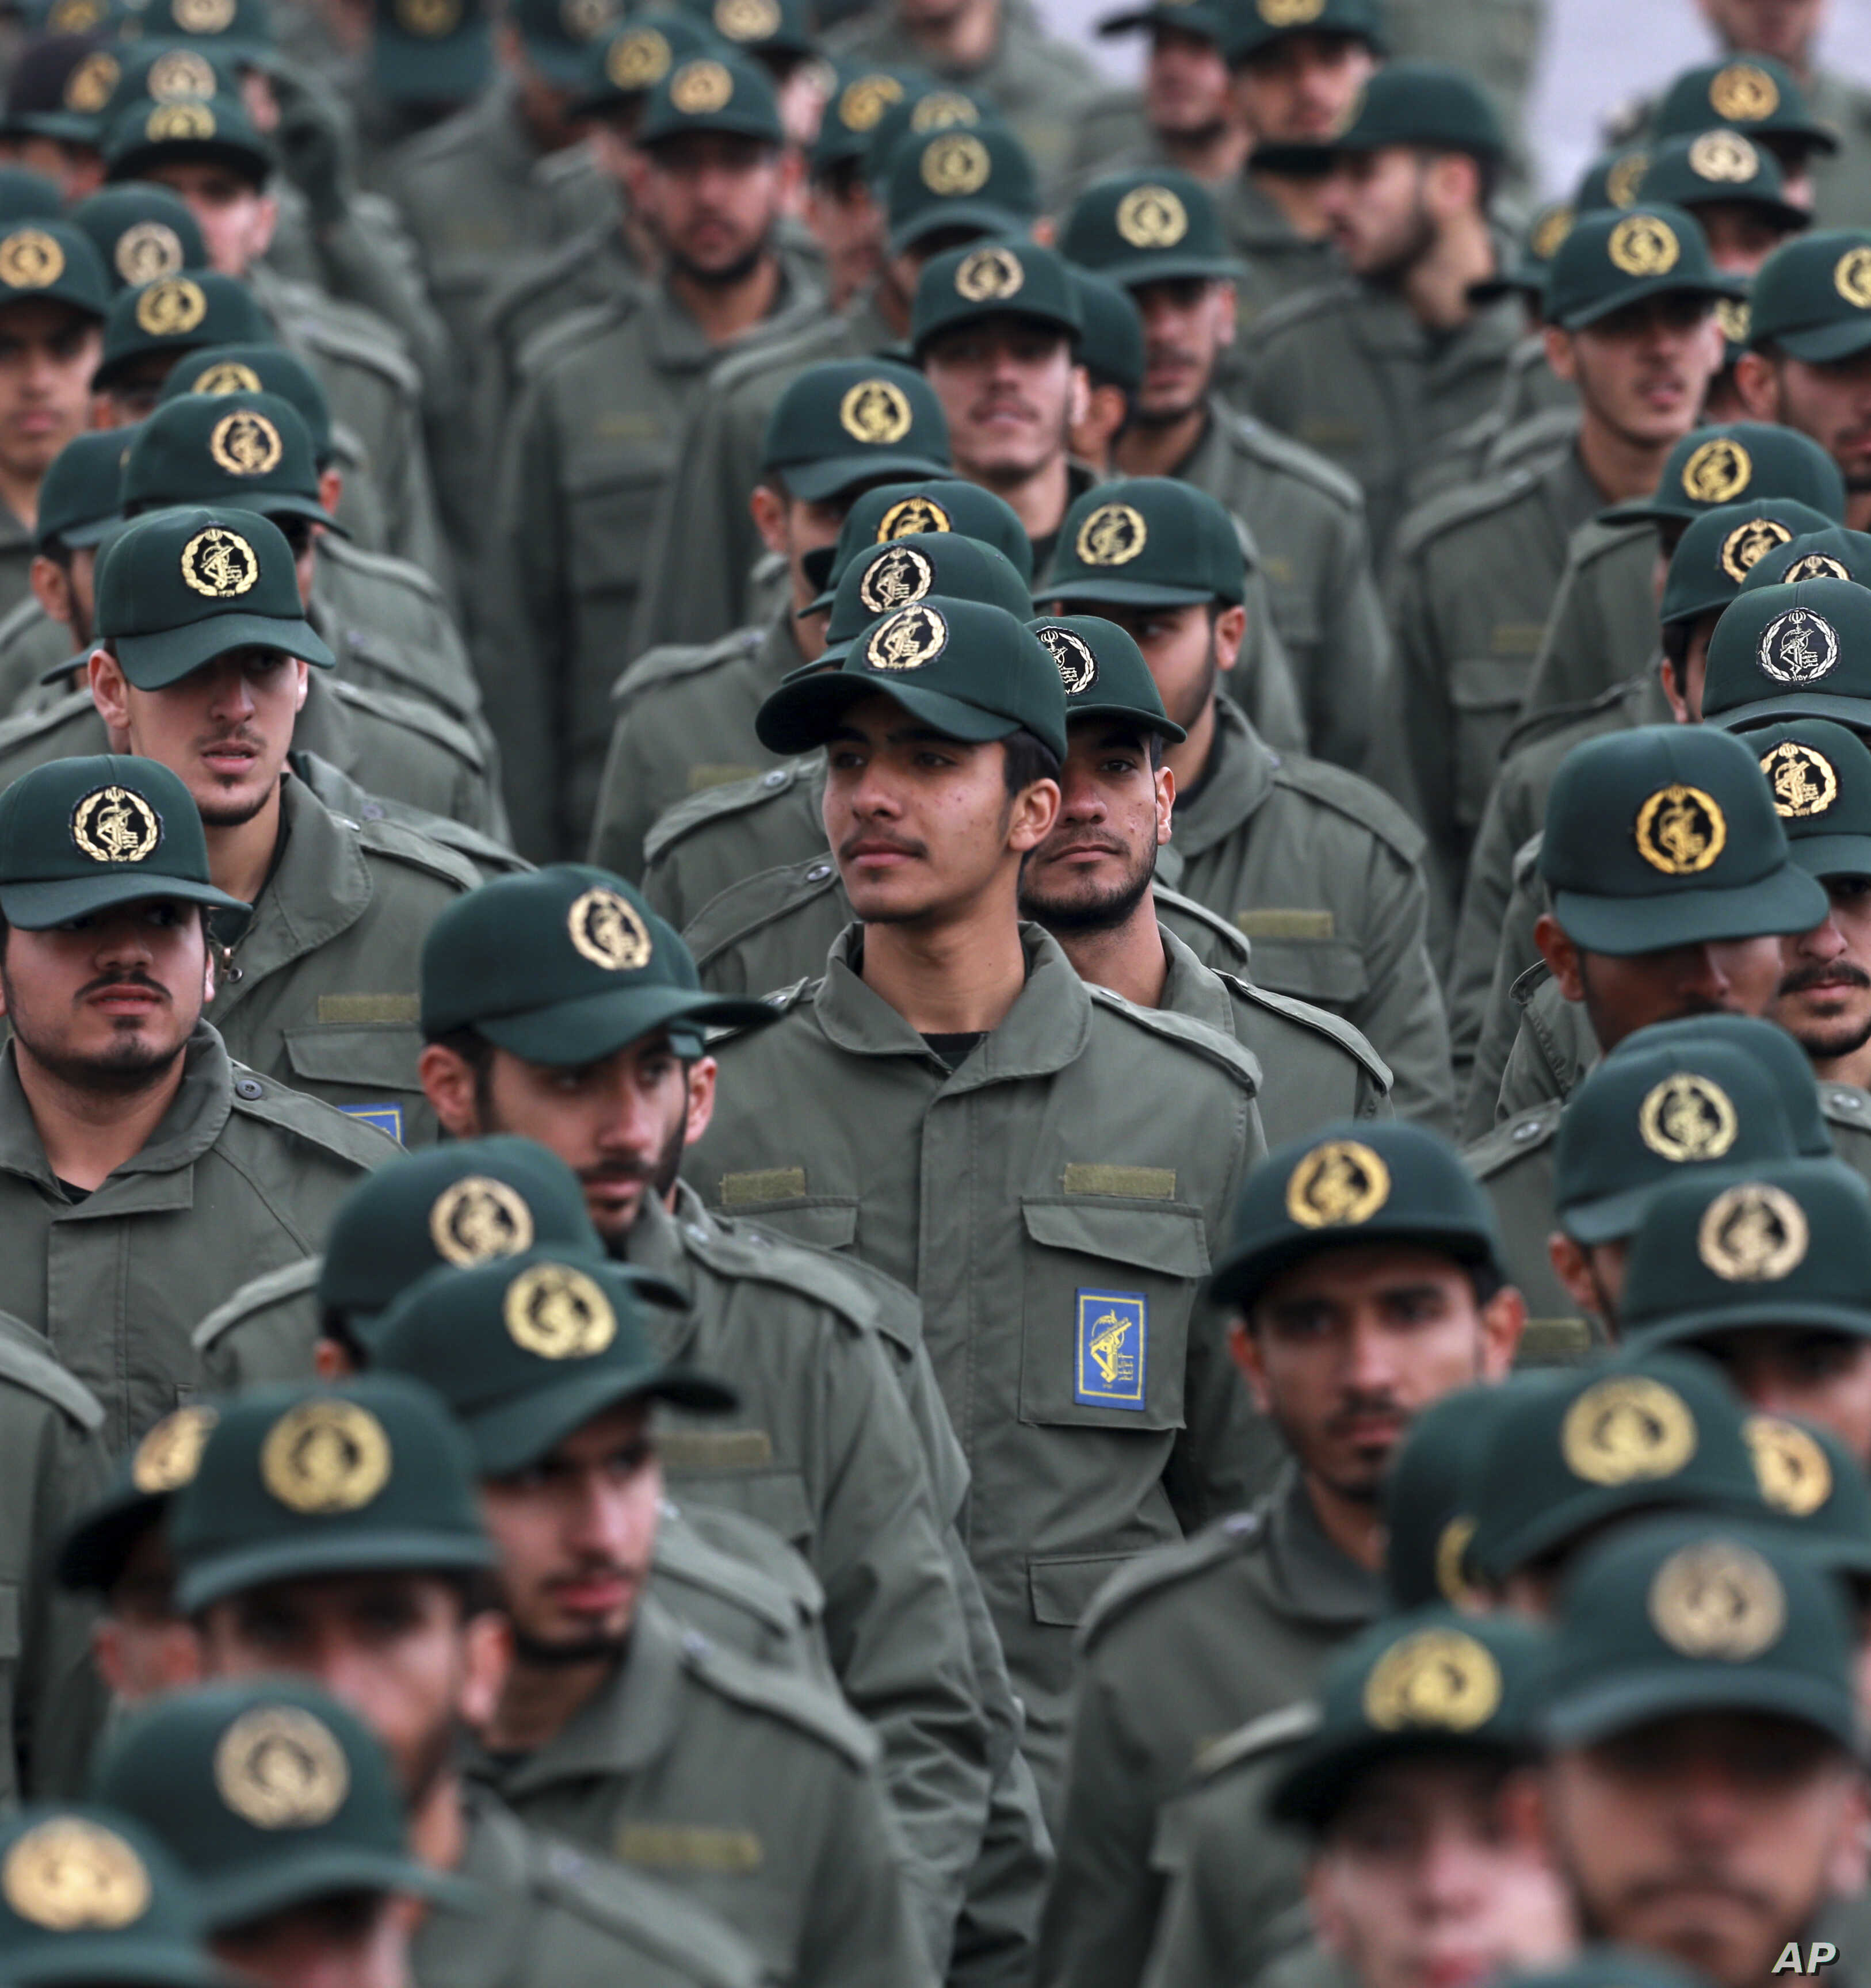 Experts: IRGC Terror Label Could Fuel US-Iran Tension